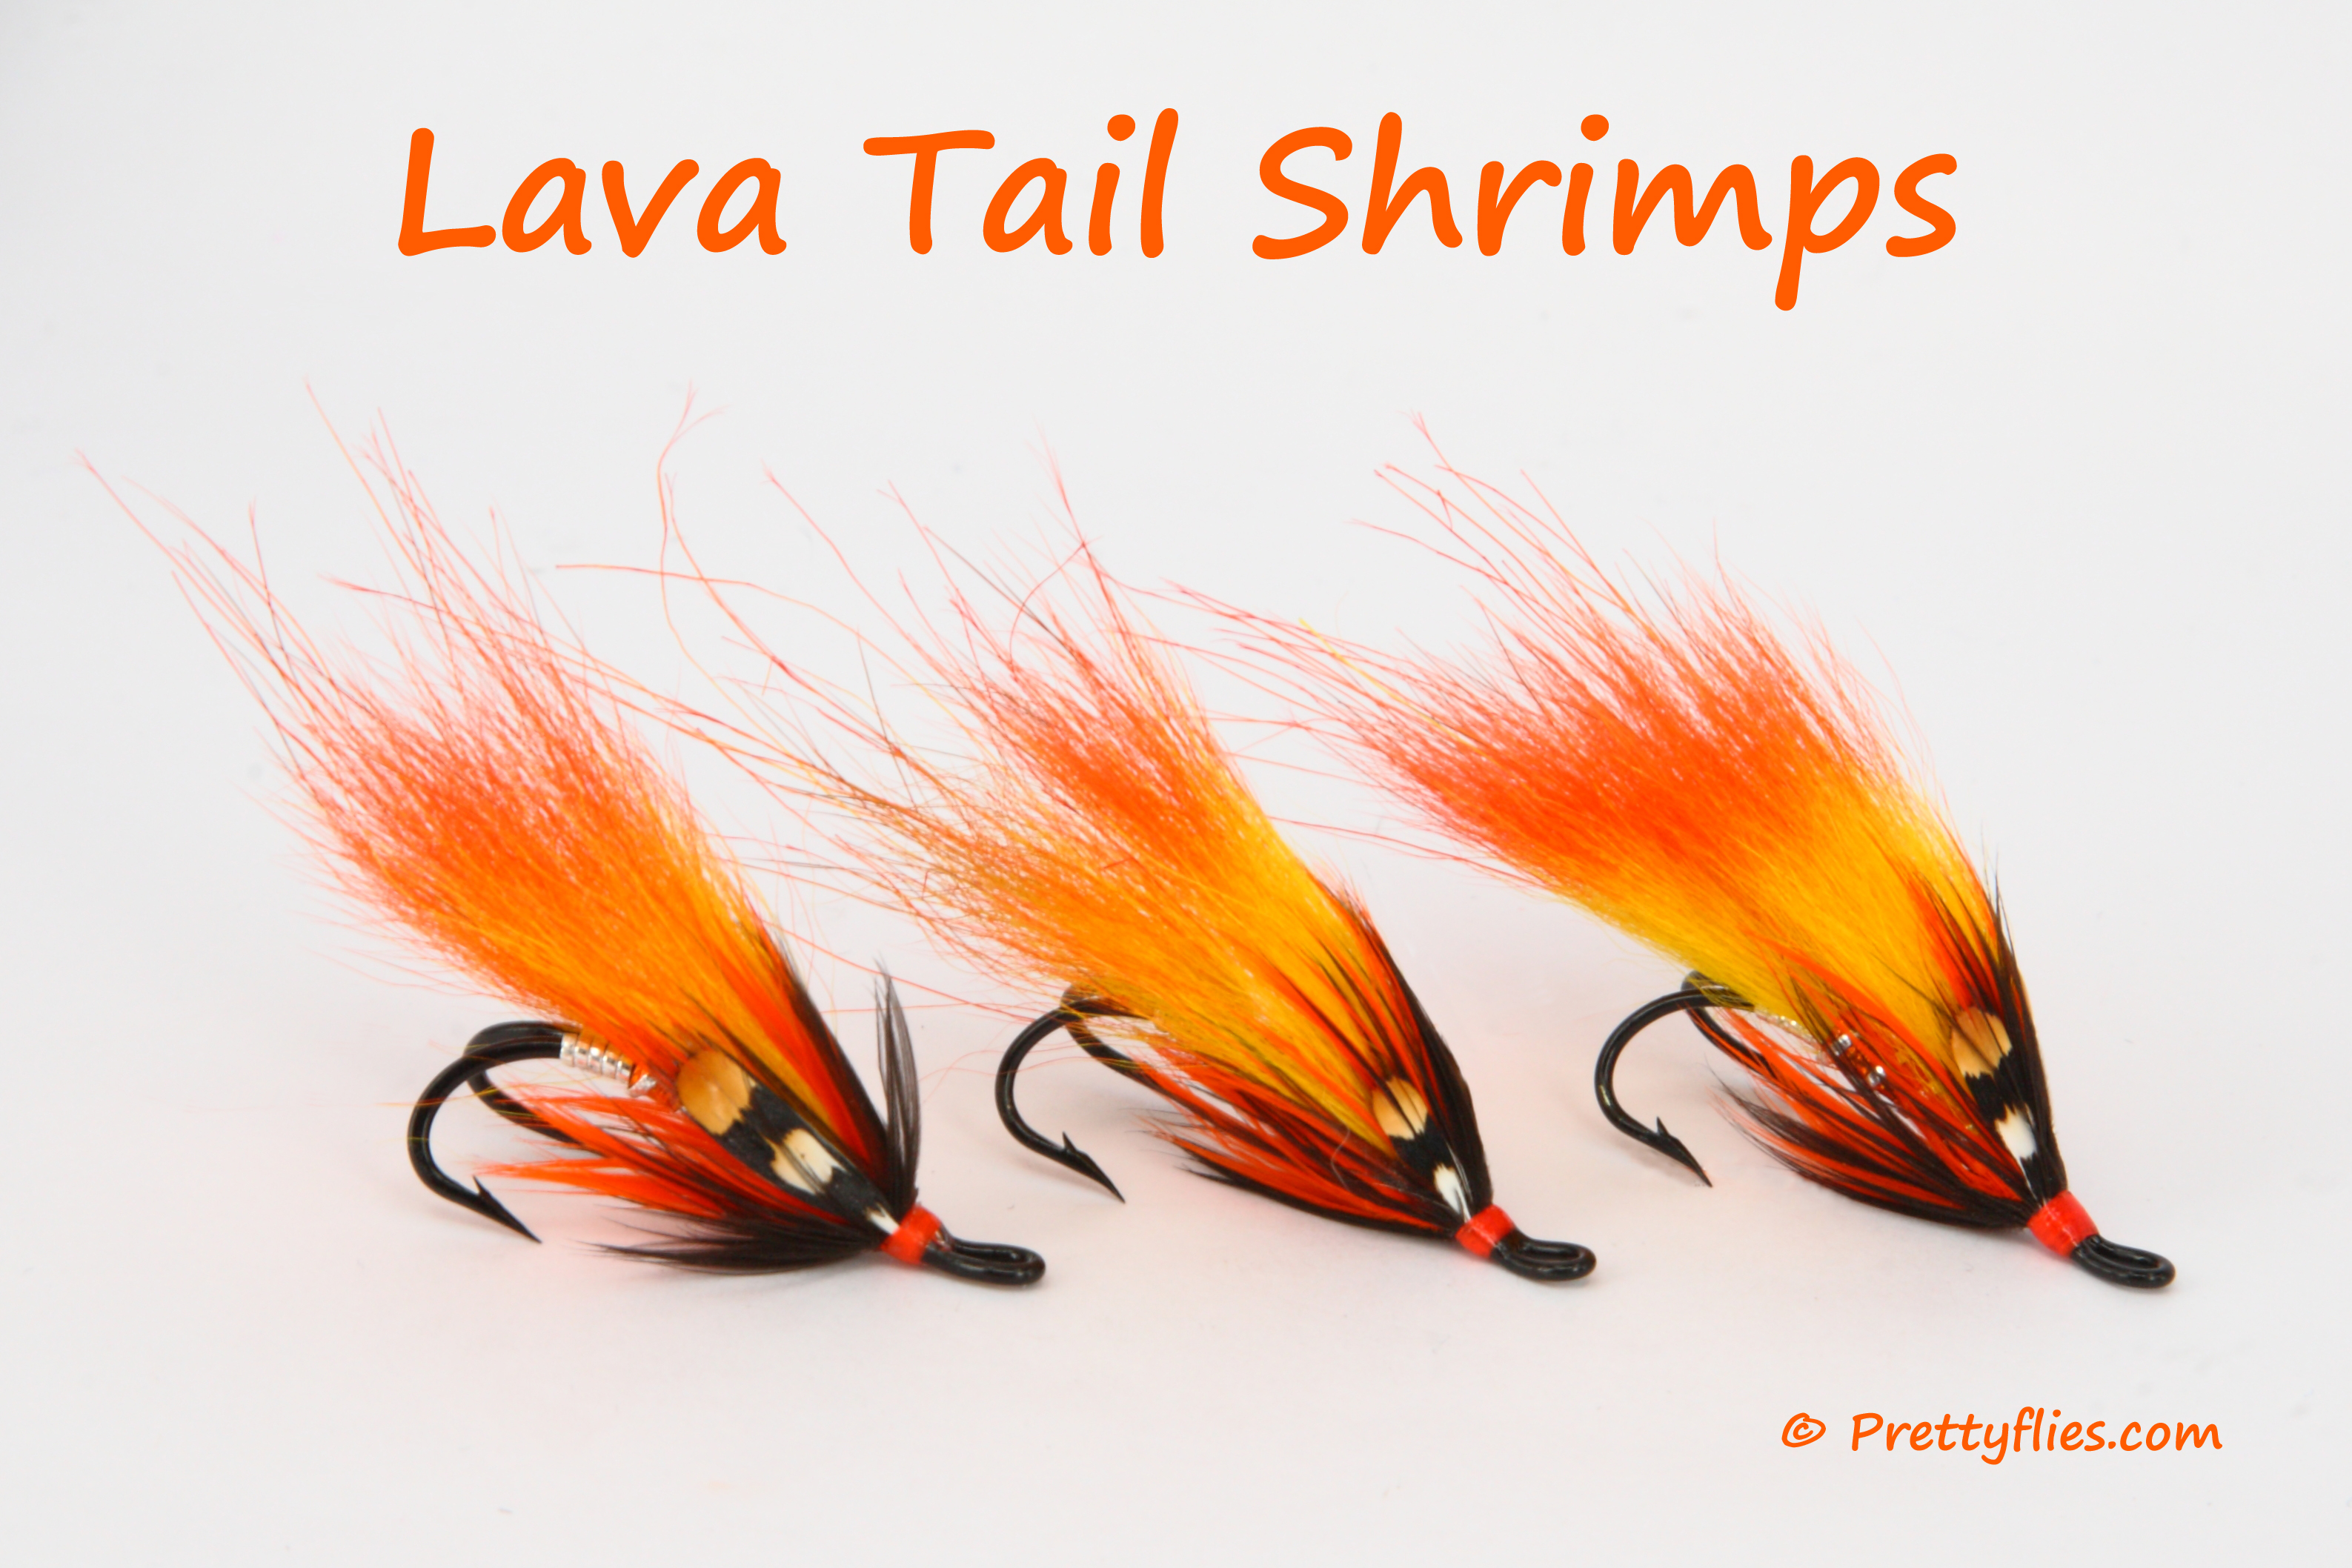 Lava Tail Shrimps Trio copy.jpg